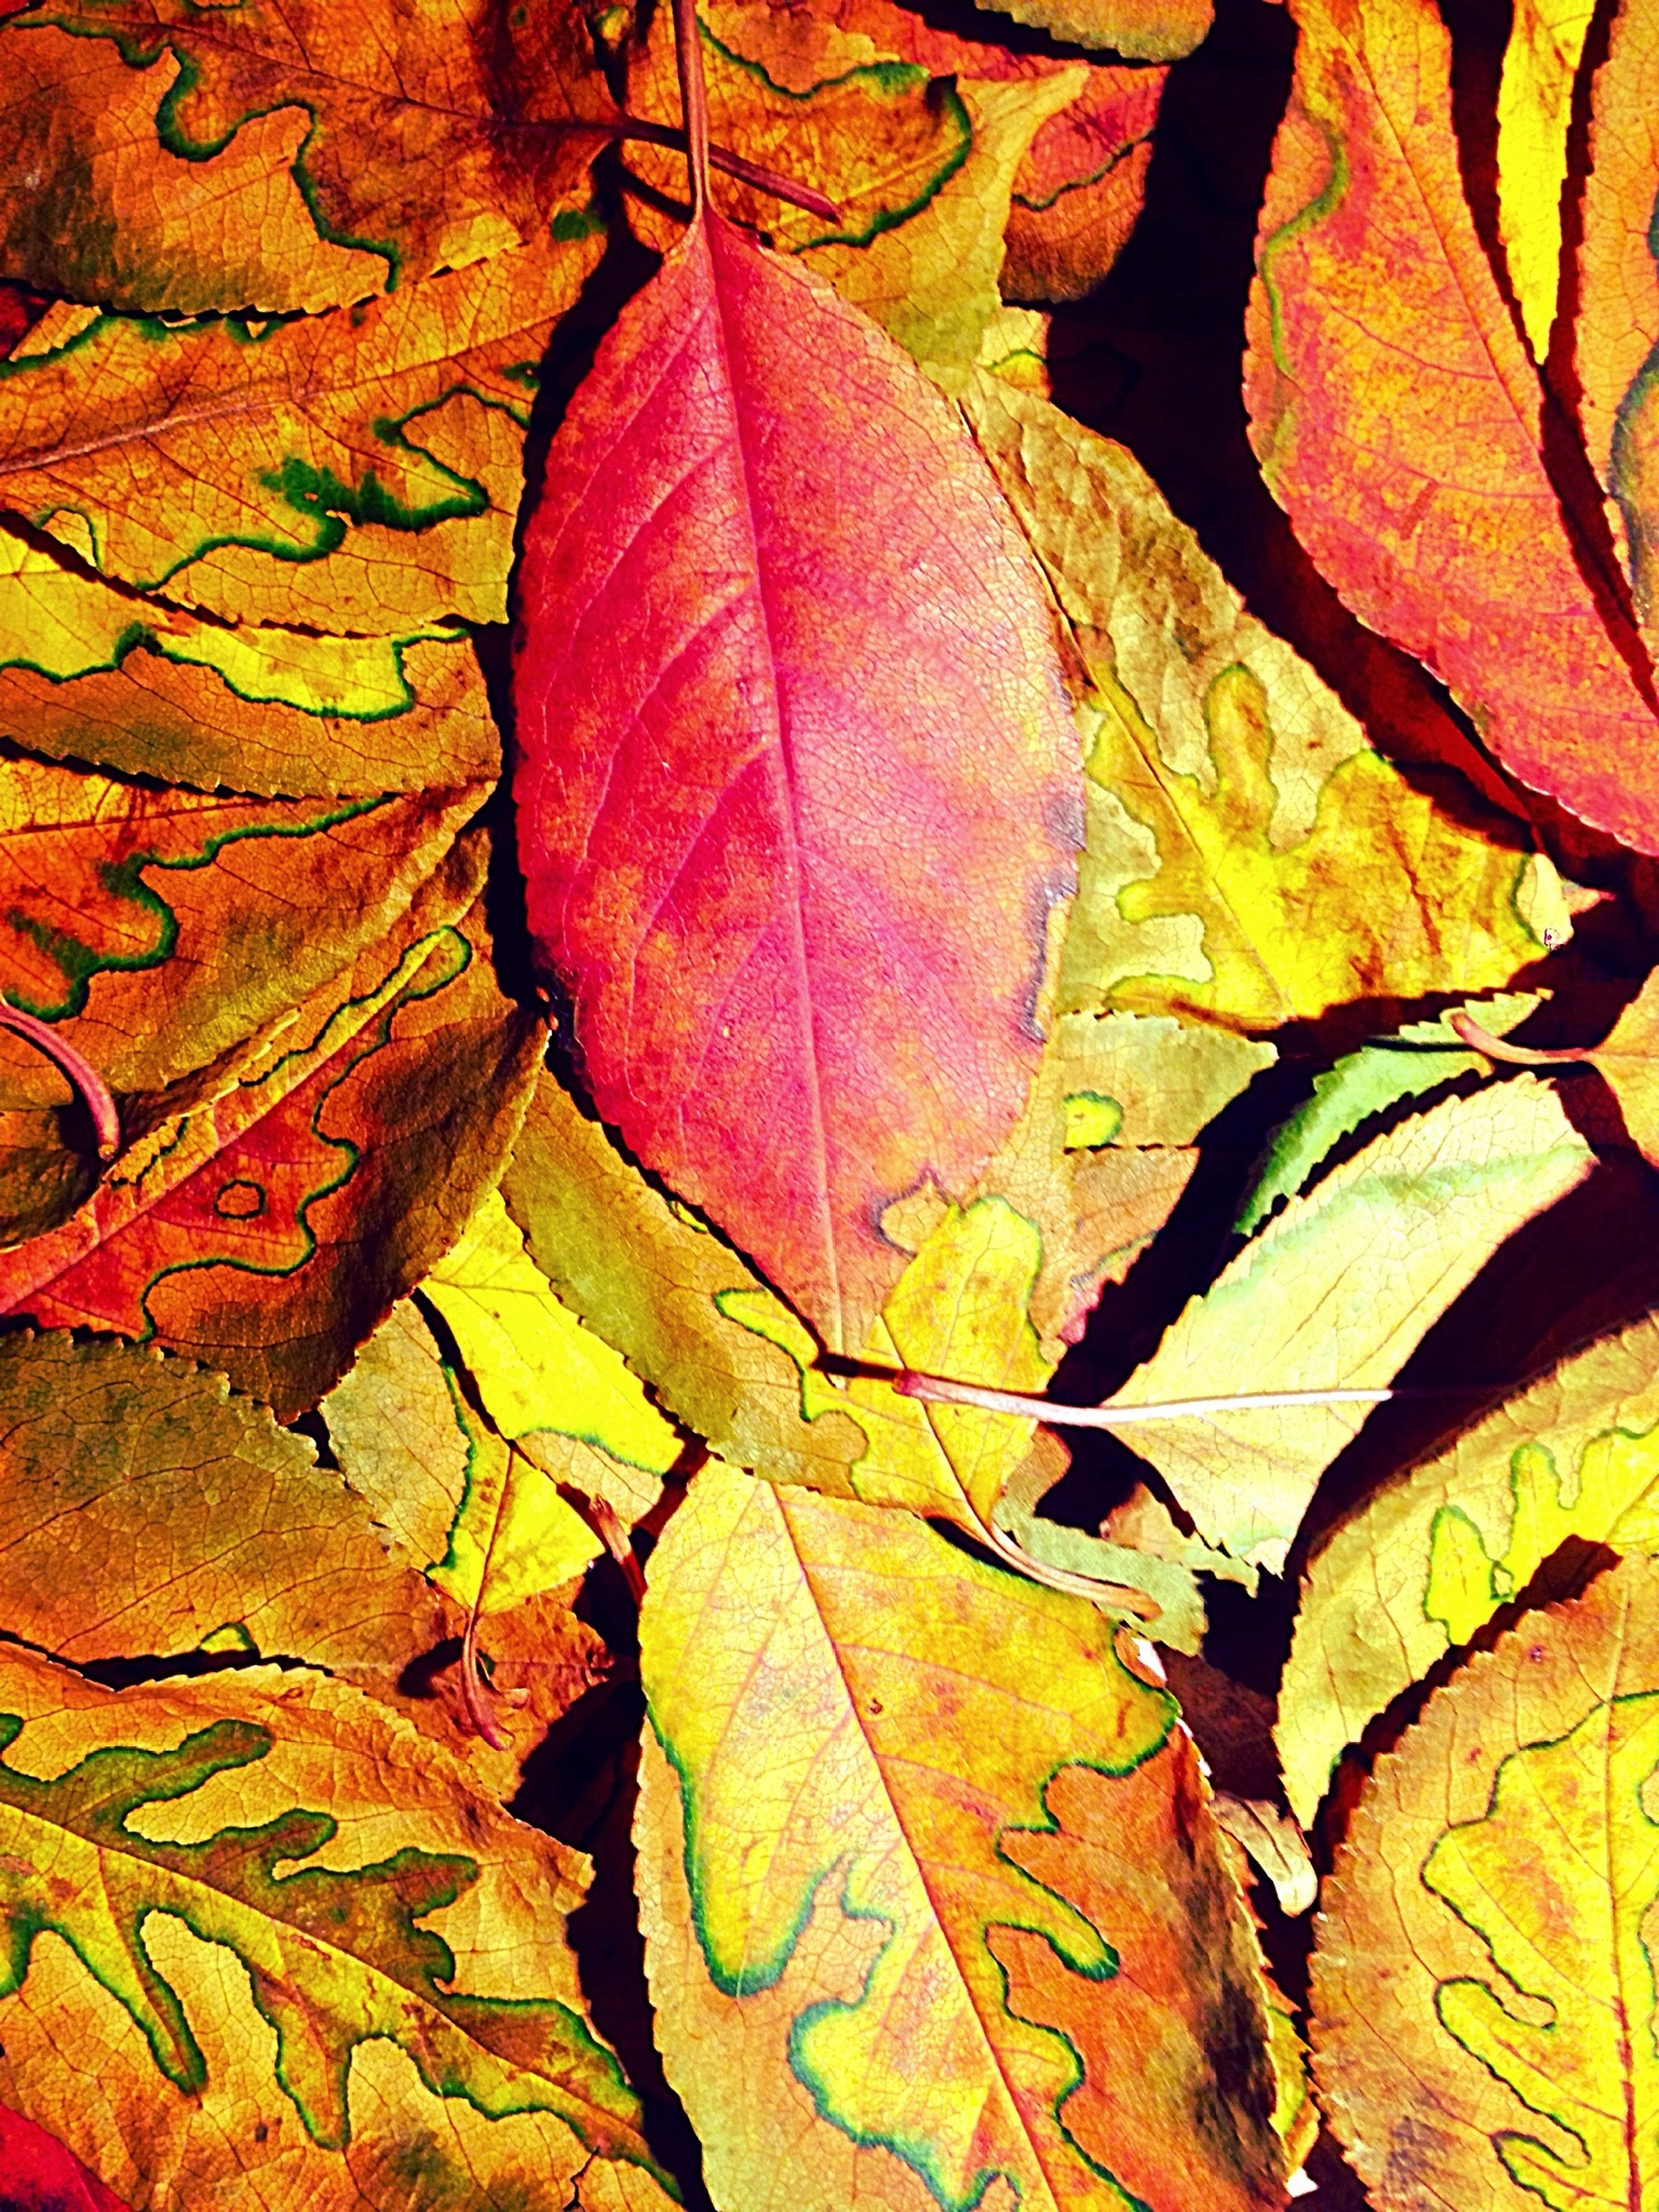 leaf, autumn, change, leaf vein, leaves, full frame, backgrounds, season, close-up, yellow, natural pattern, nature, multi colored, pattern, outdoors, day, orange color, no people, textured, vibrant color